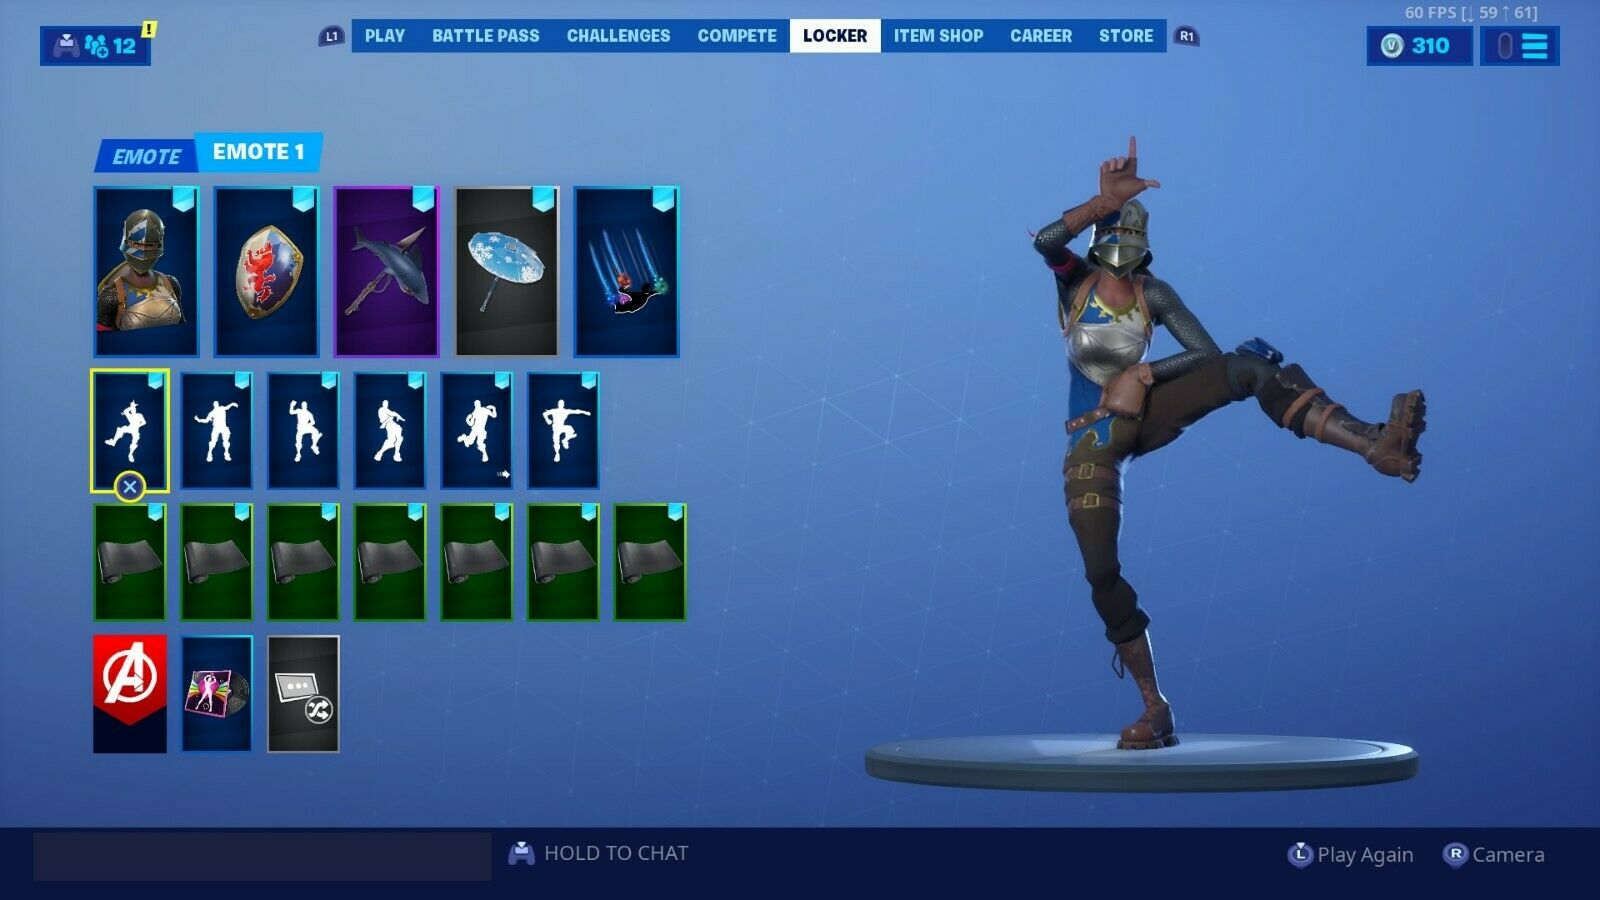 Royale Knight Season 1 9 80 Skins And 250 Emotes And Sprays Account Overall Level 439 With Battle Pass From Every Season Fortnite Accounts For Sale Season 1 vs season 9 trivia challenge (fortnite). royale knight season 1 9 80 skins and